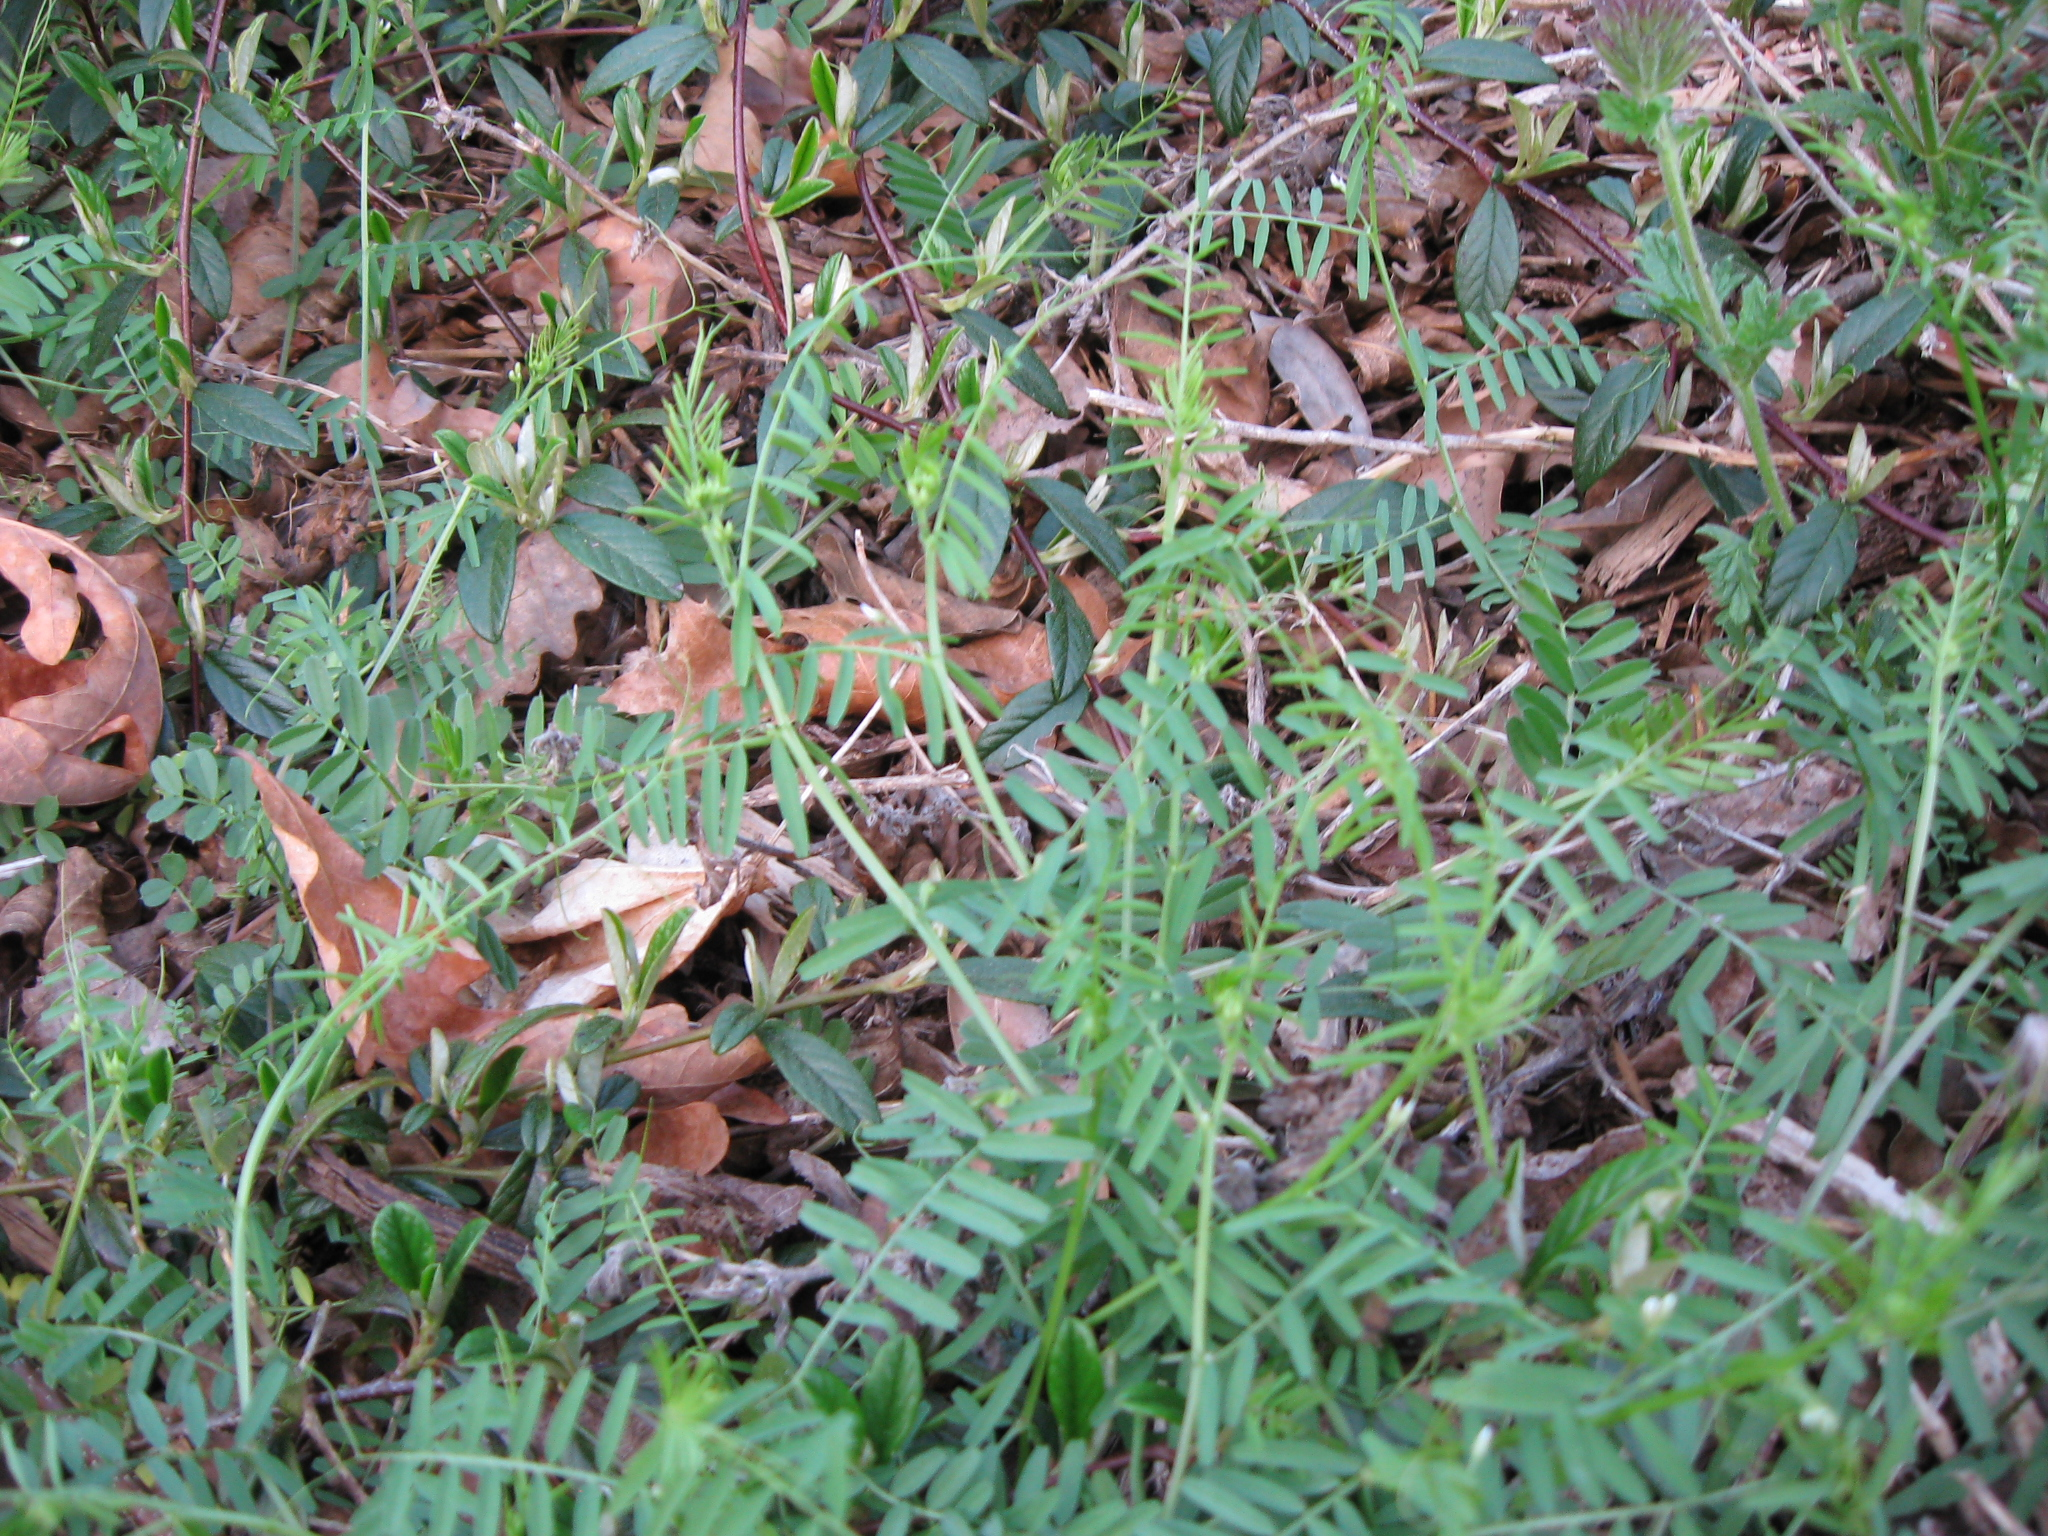 Weeds in flower beds identify - Weeds In Flower Beds Identify 48